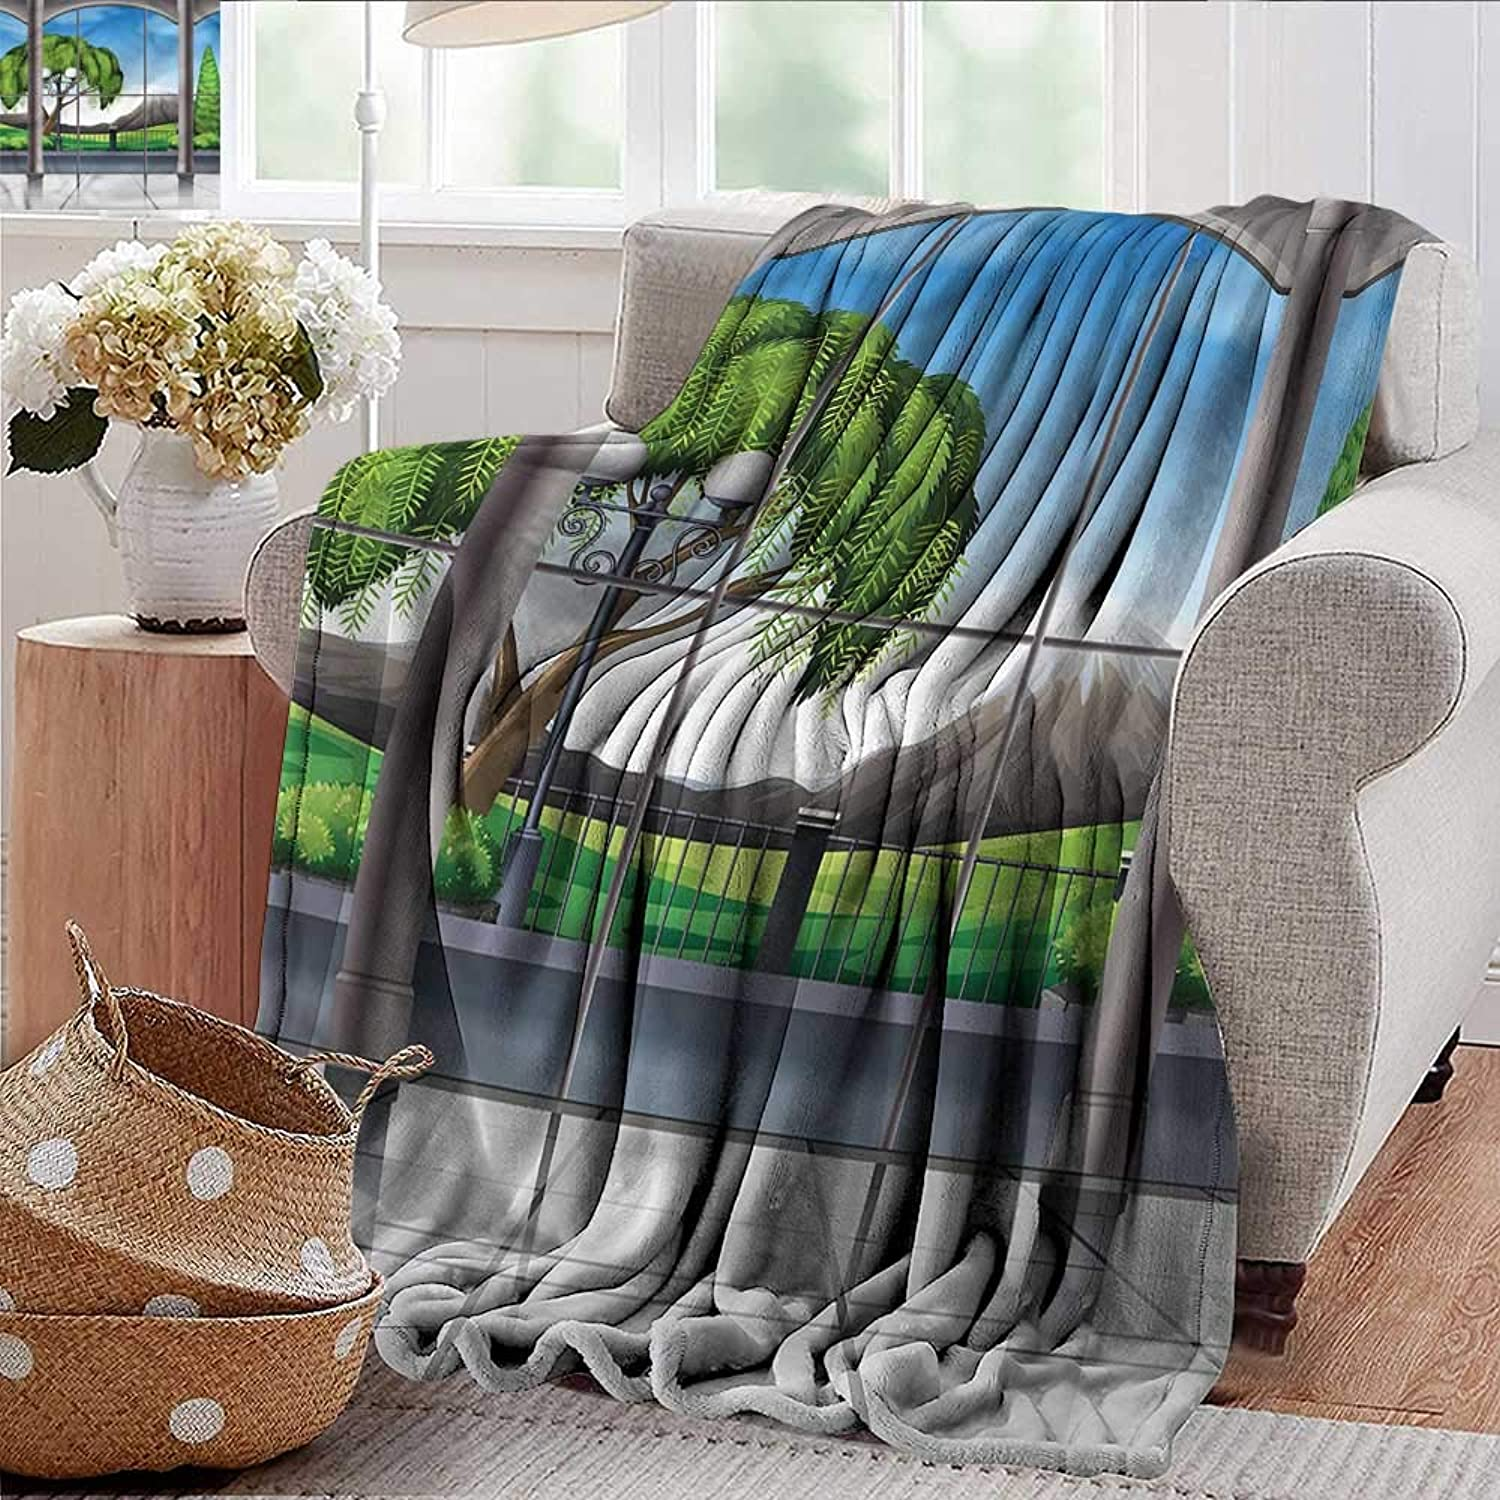 Xaviera Doherty Summer Blanket Landscape,Window View Mountains Weighted Blanket for Adults Kids, Better Deeper Sleep 35 x60